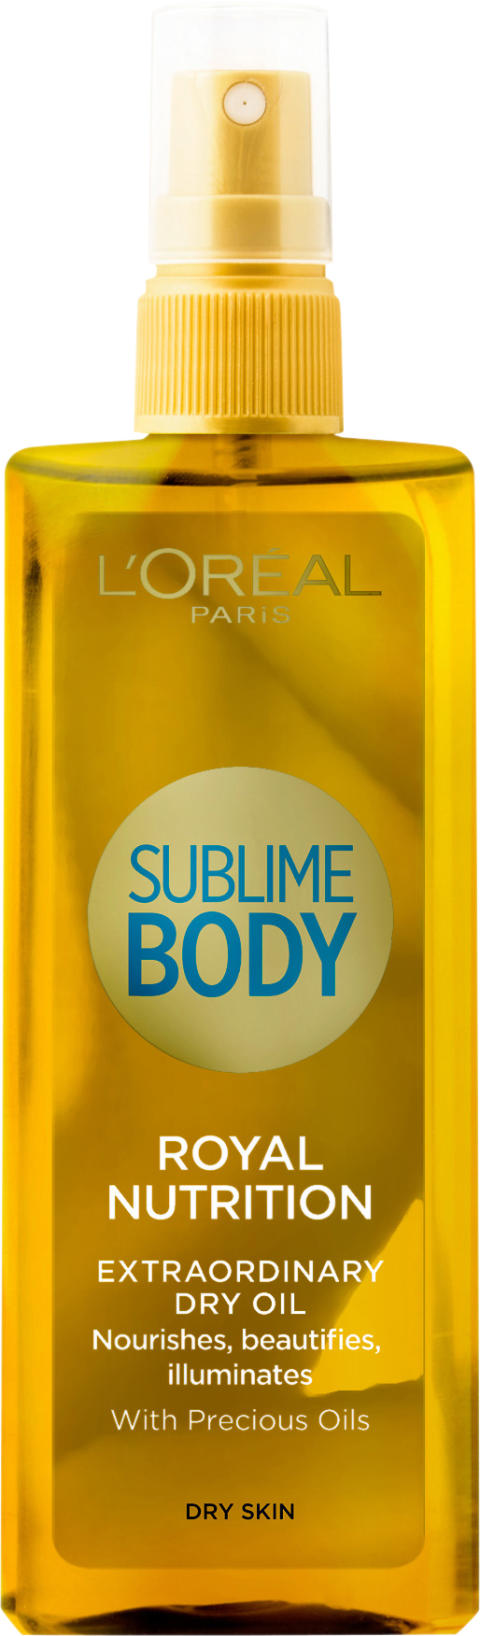 L'Oréal Paris Sublime Body Extraordinary Dry Oil